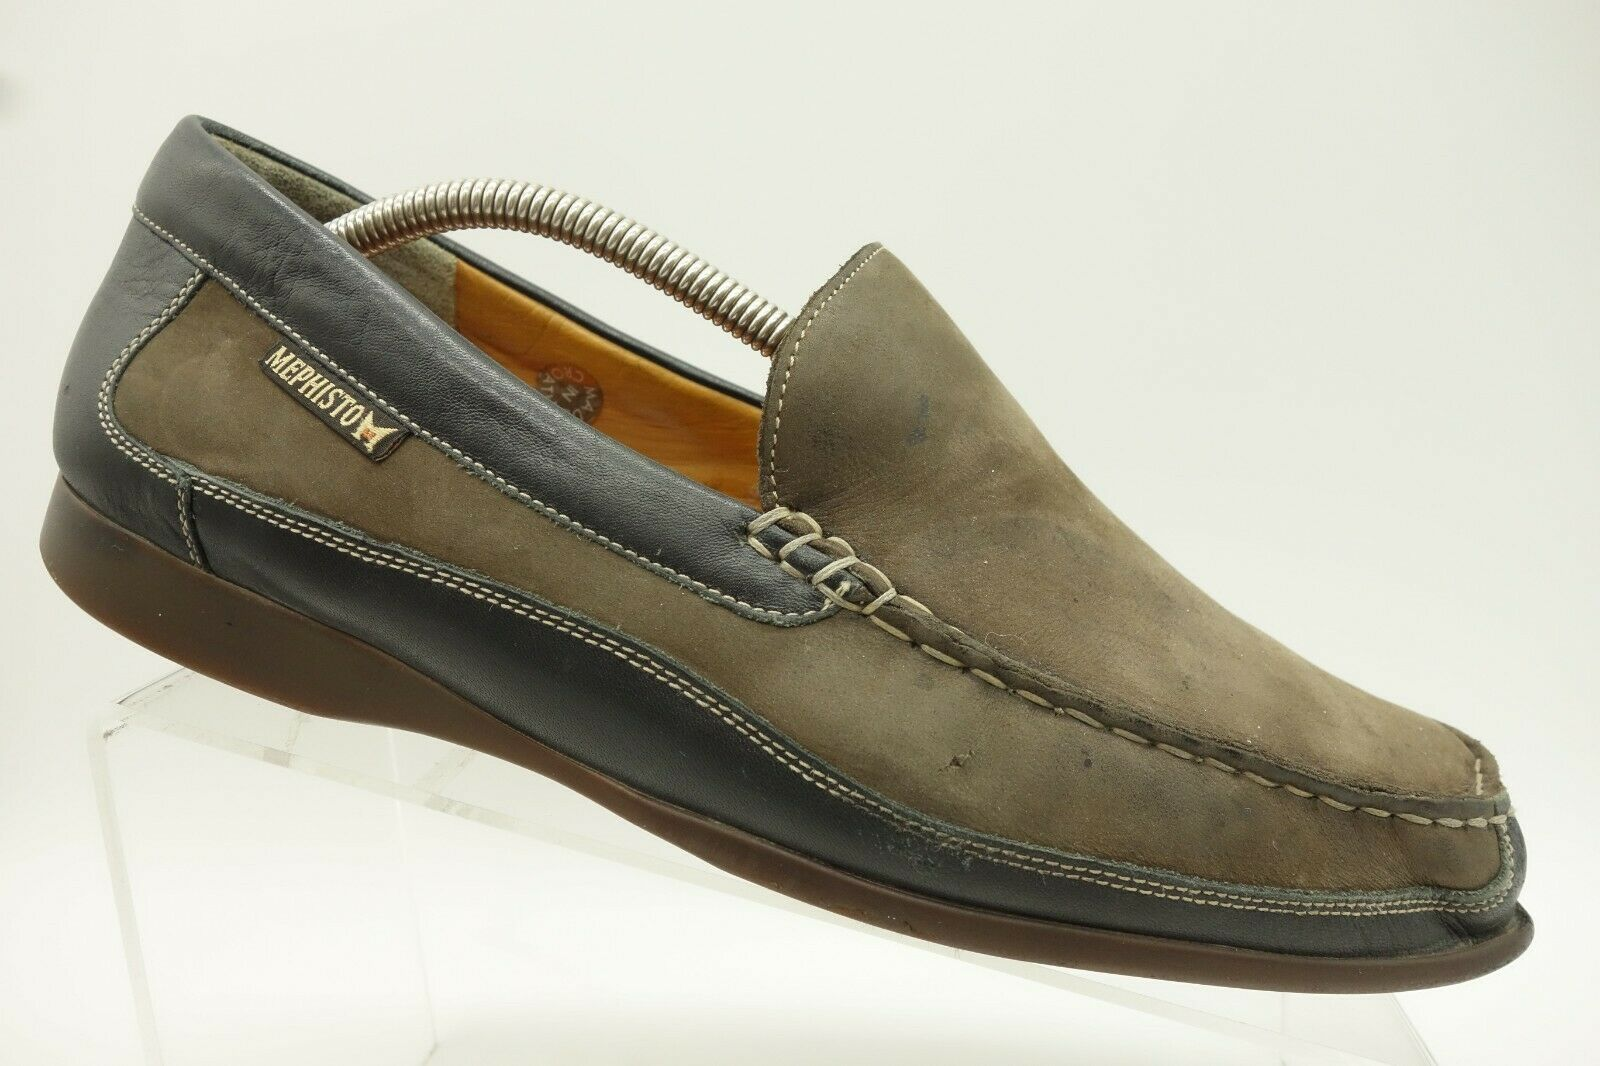 Mephisto Brown Leather Casual Comfort Moc Toe Slip On Loafer shoes Mens 10